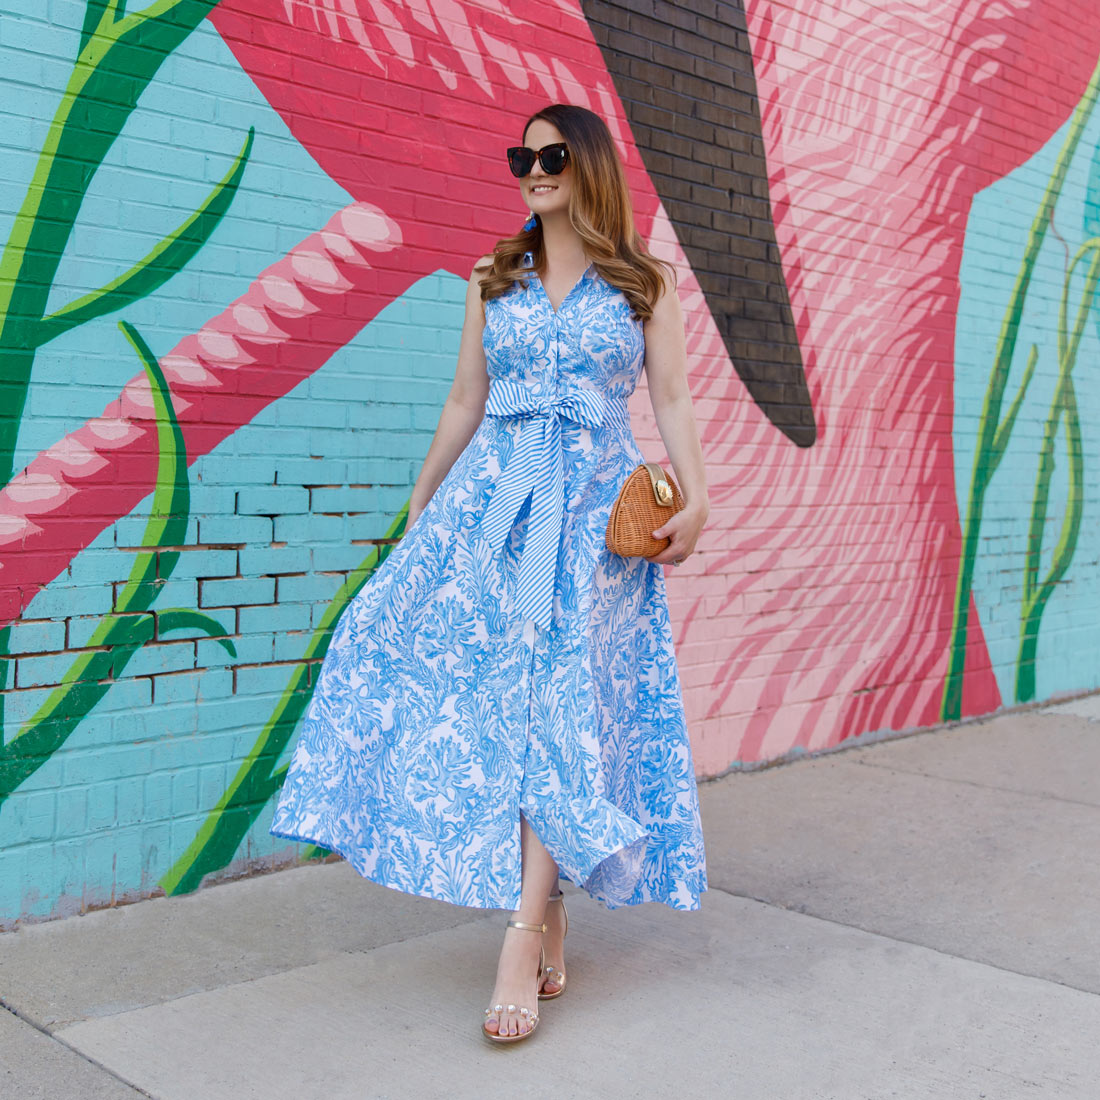 Jennifer Lake Lilly Pulitzer Blue Shirtdress